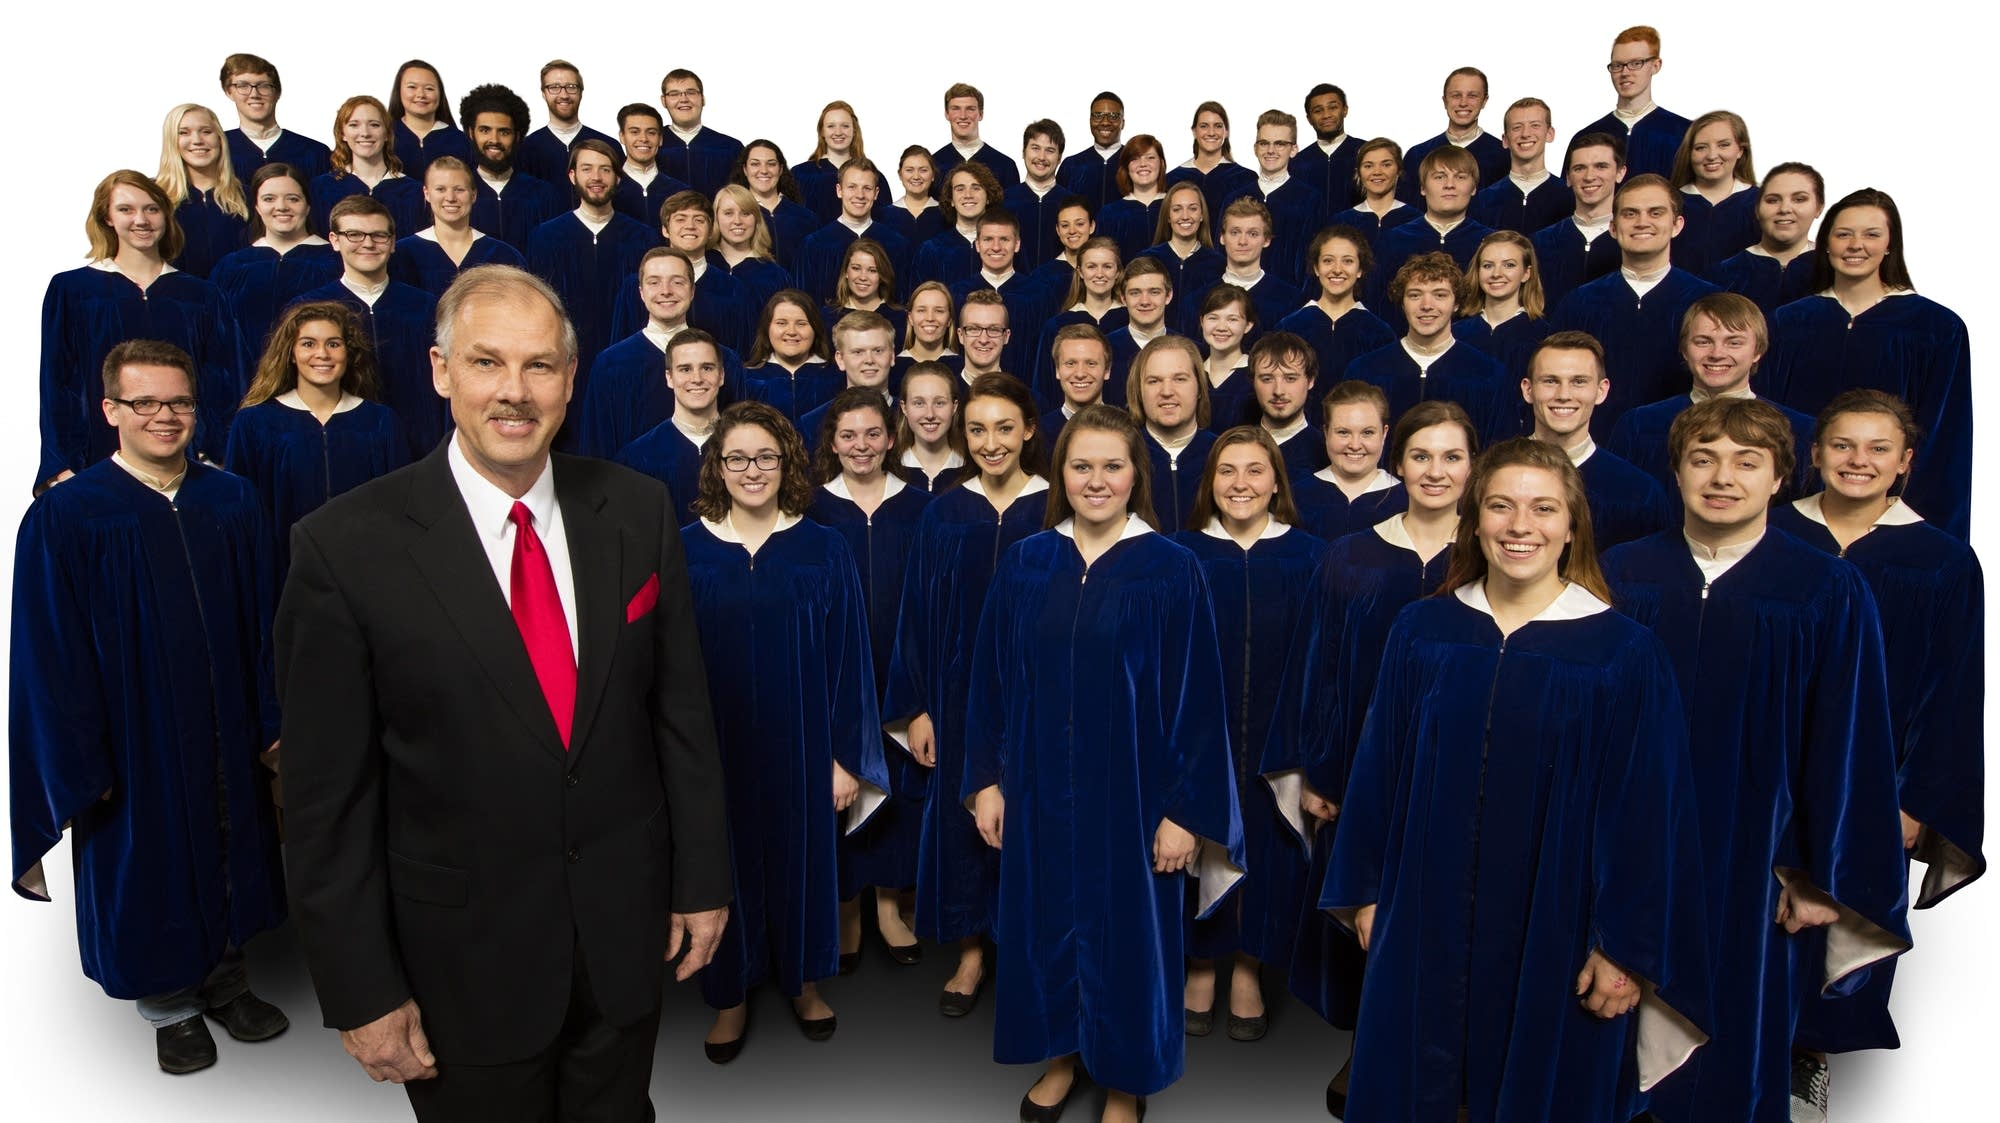 The 2016 Concordia Choir